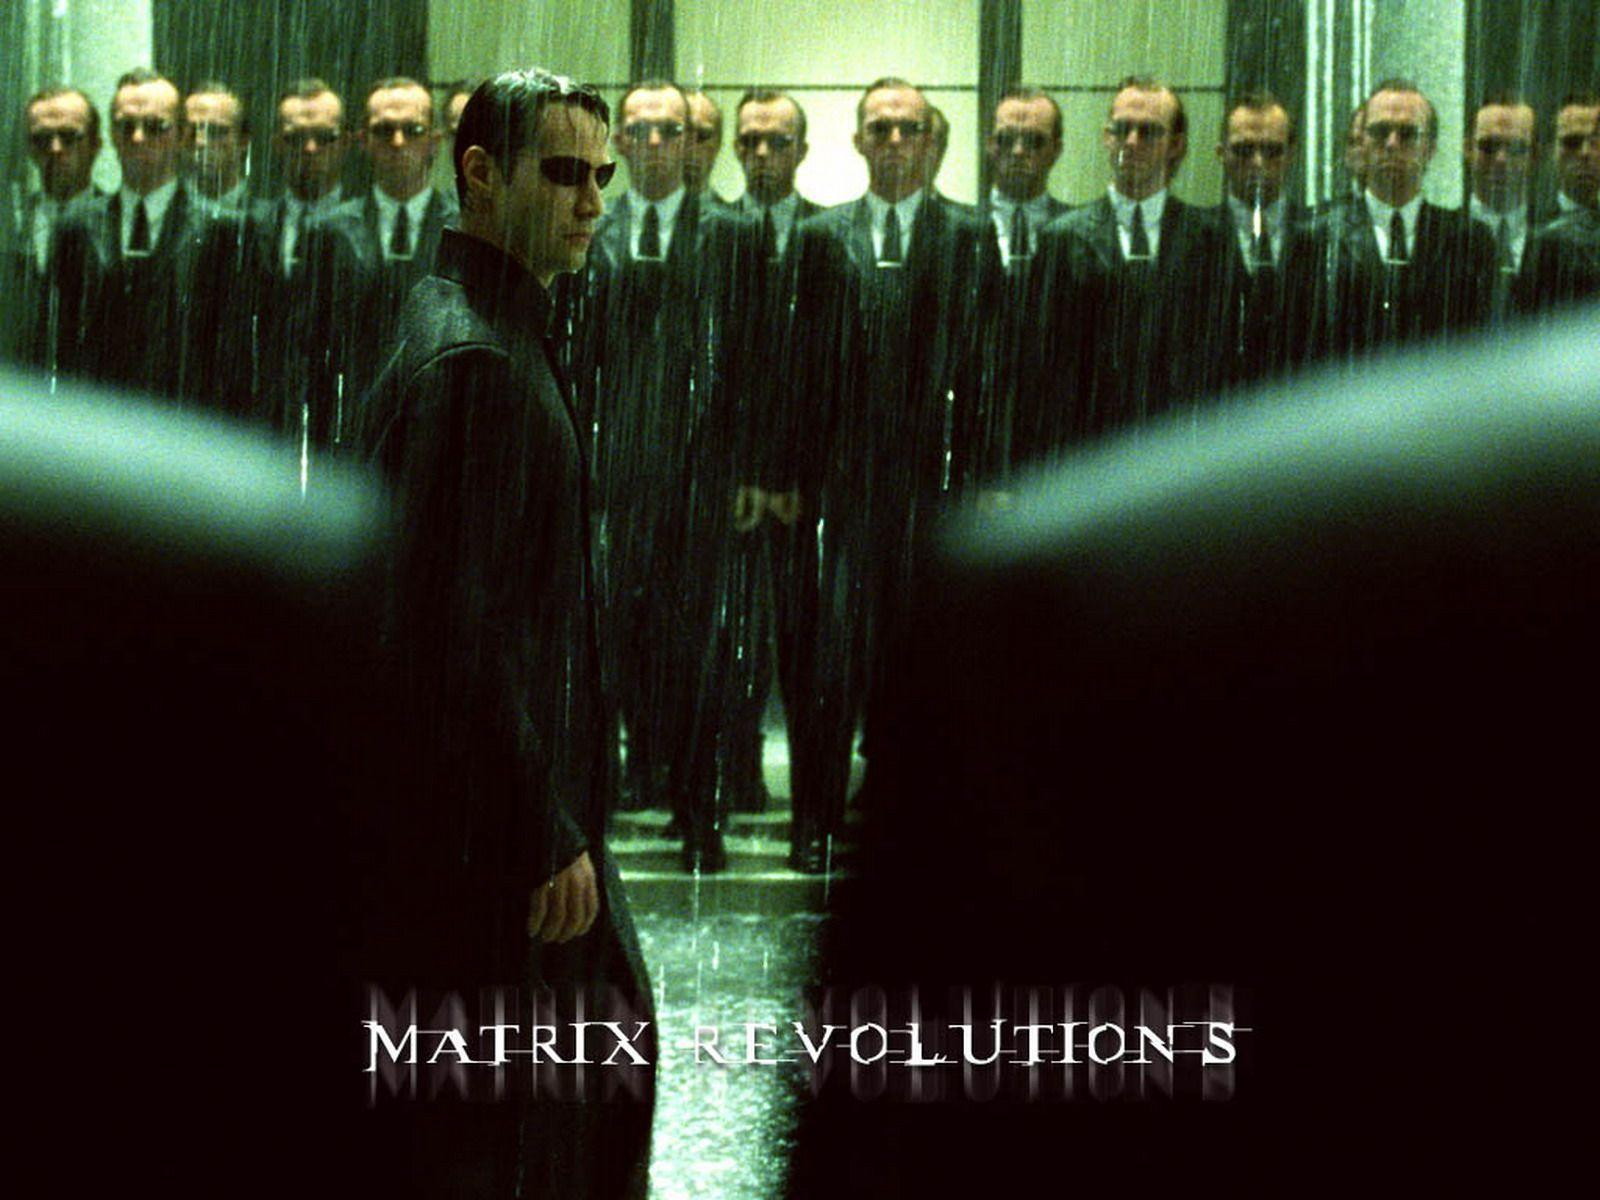 Image For > Matrix Revolutions Movie Poster